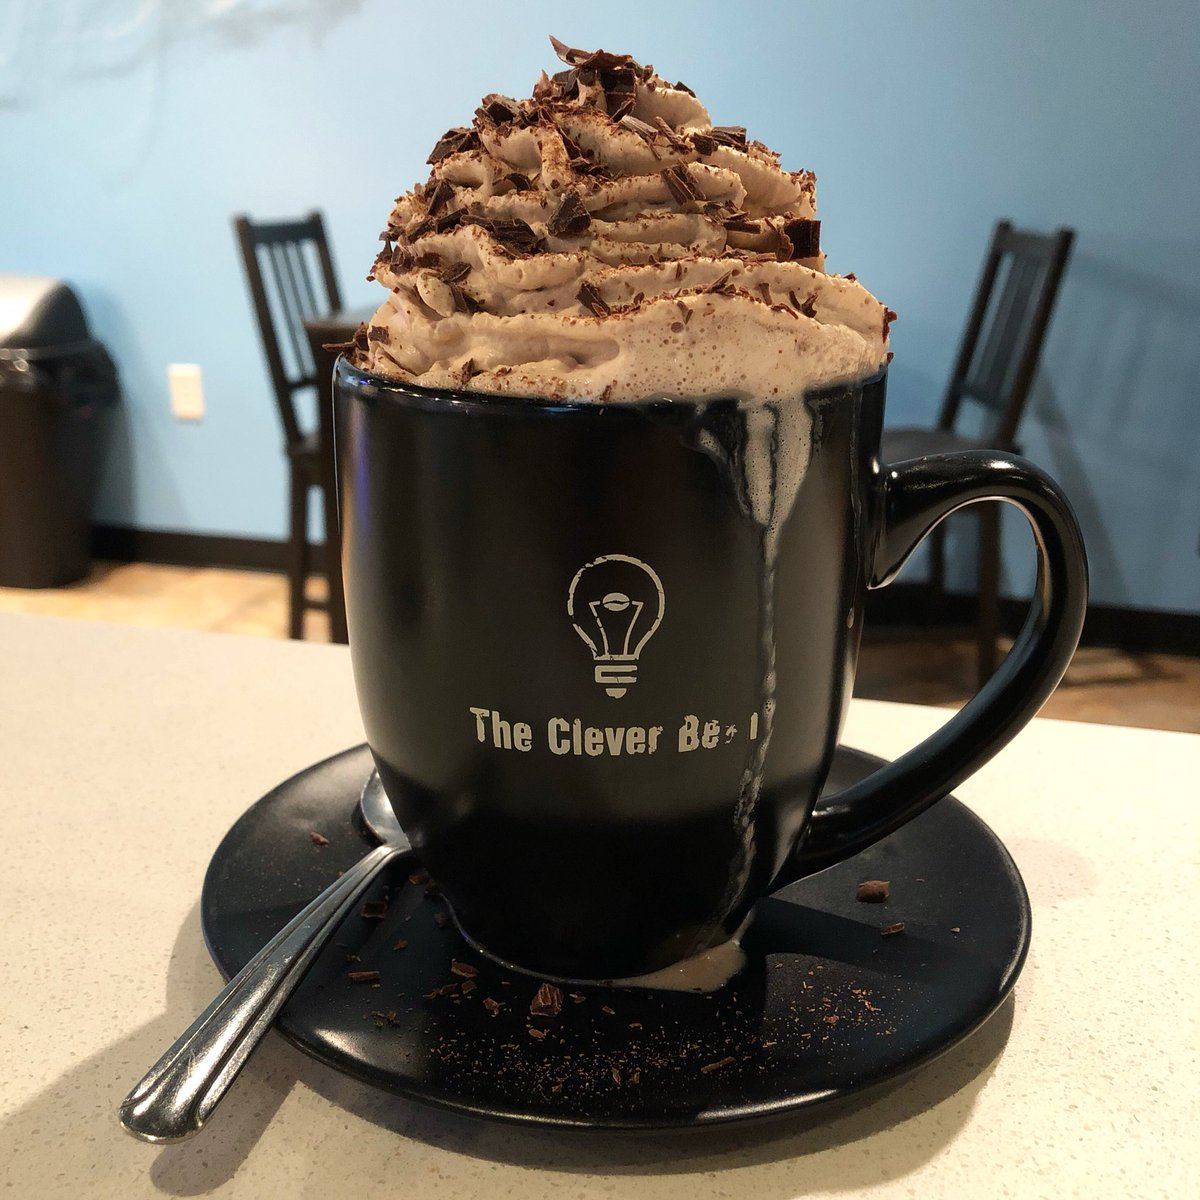 The Clever Bean uses our chocolate in their Royal Hot Chocolate.